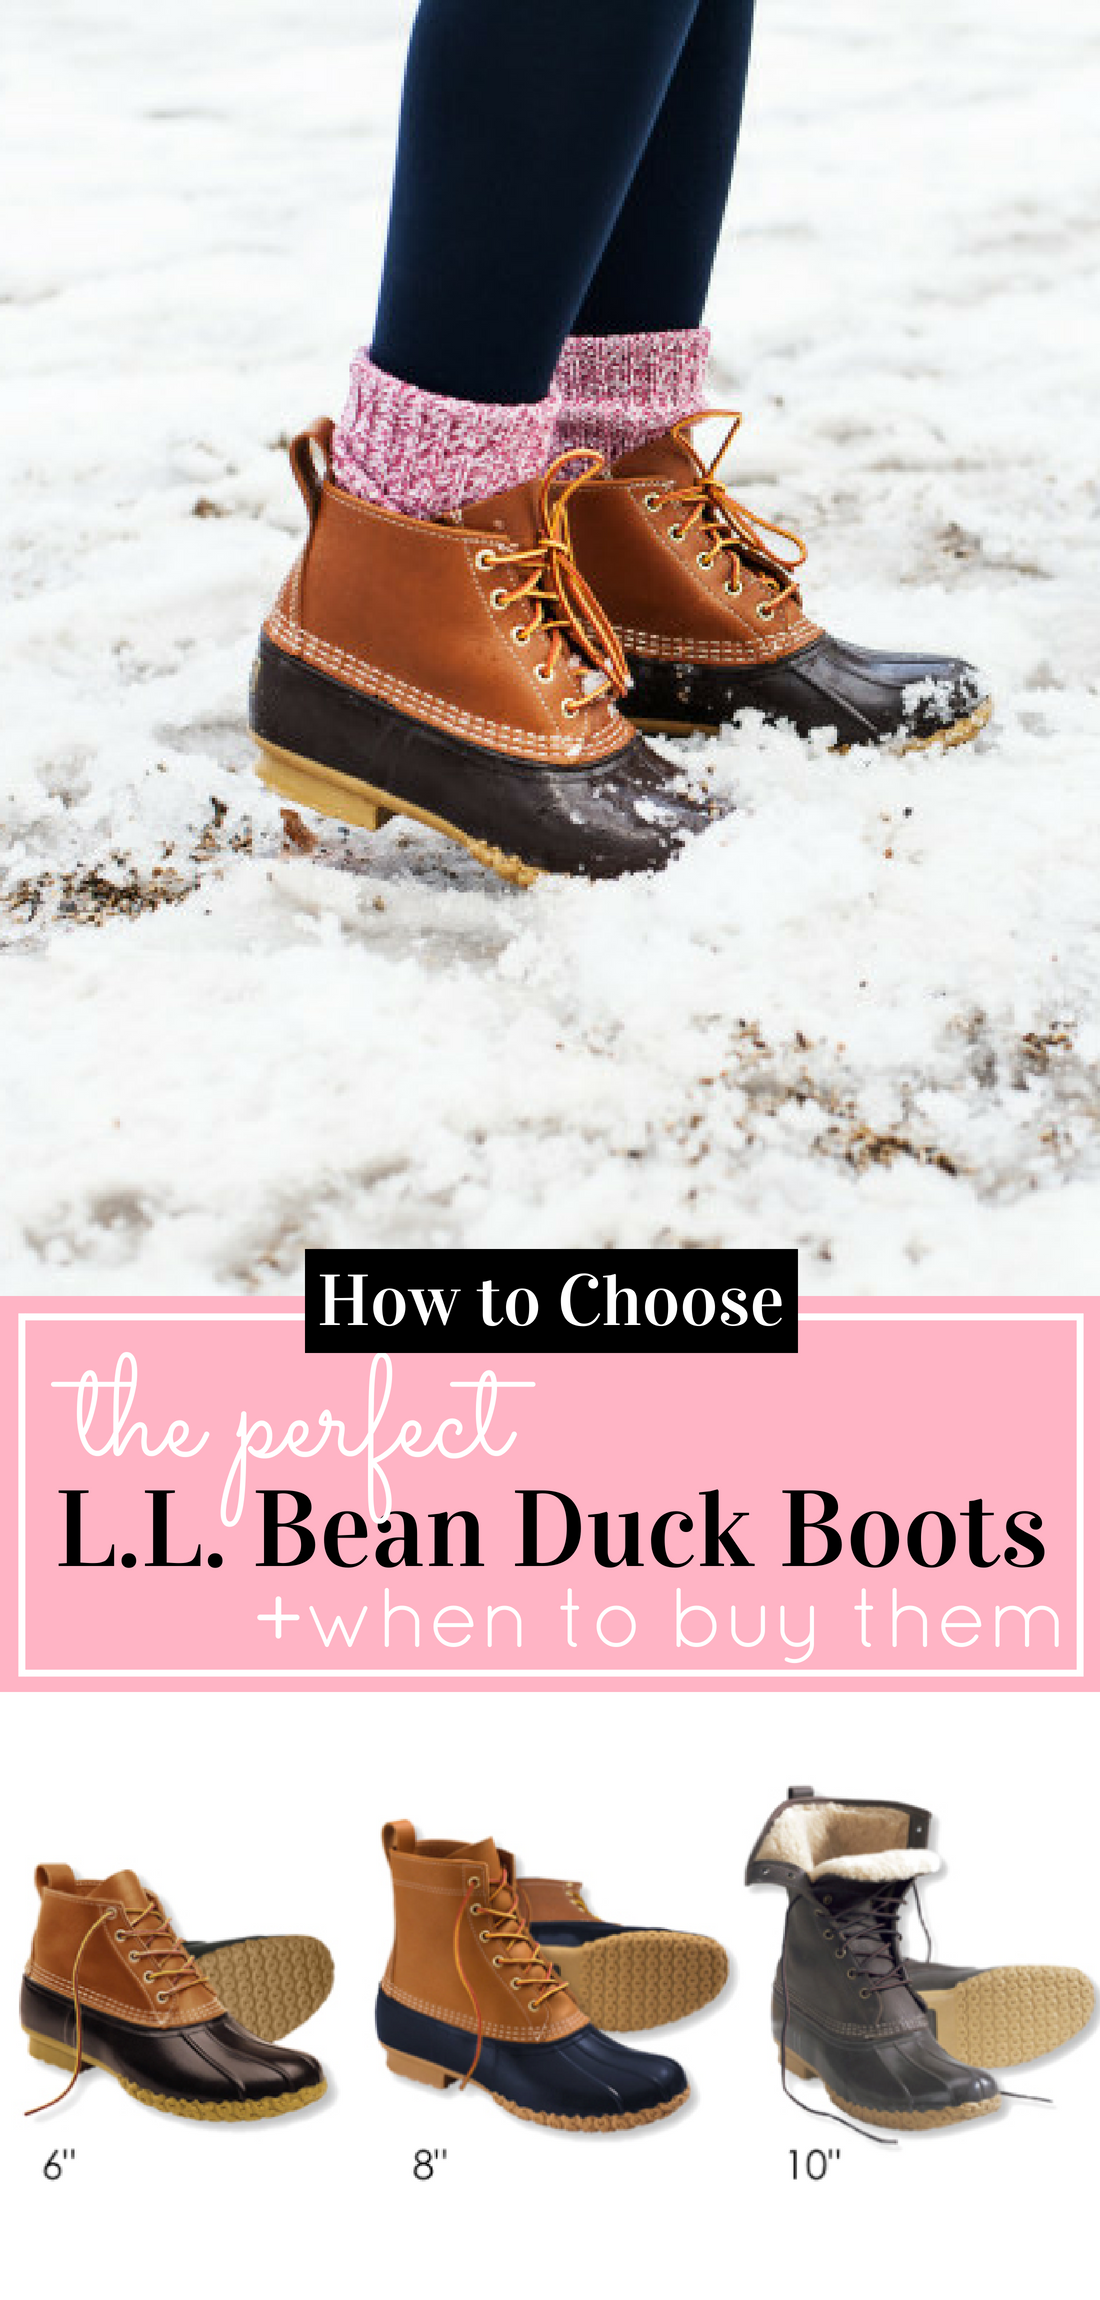 Looking for the perfect pair of L.L. Bean duck boots? I'm sharing how to choose classic bean boots, a.k.a., duck boots, and when to buy them to catch the biggest selection of boots before they sell out! #duckboots #beanboots #snowboots #winterboots #rainboots | glitterinc.com | @glitterinc